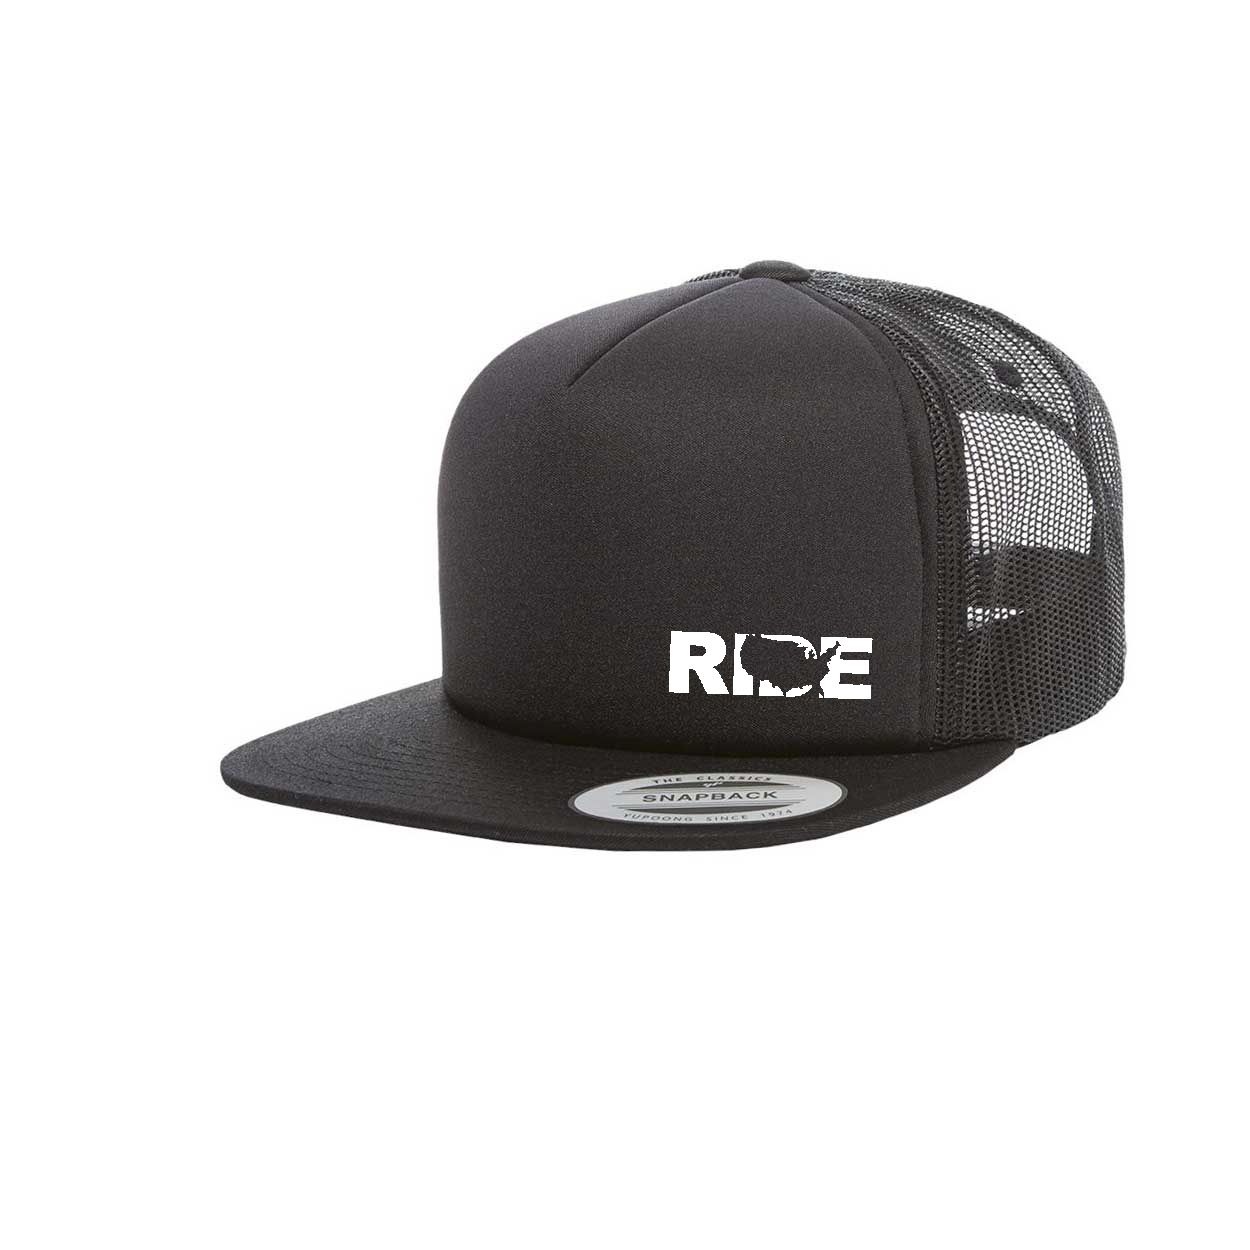 Ride United States Night Out Premium Foam Flat Brim Snapback Hat Black (White Logo)